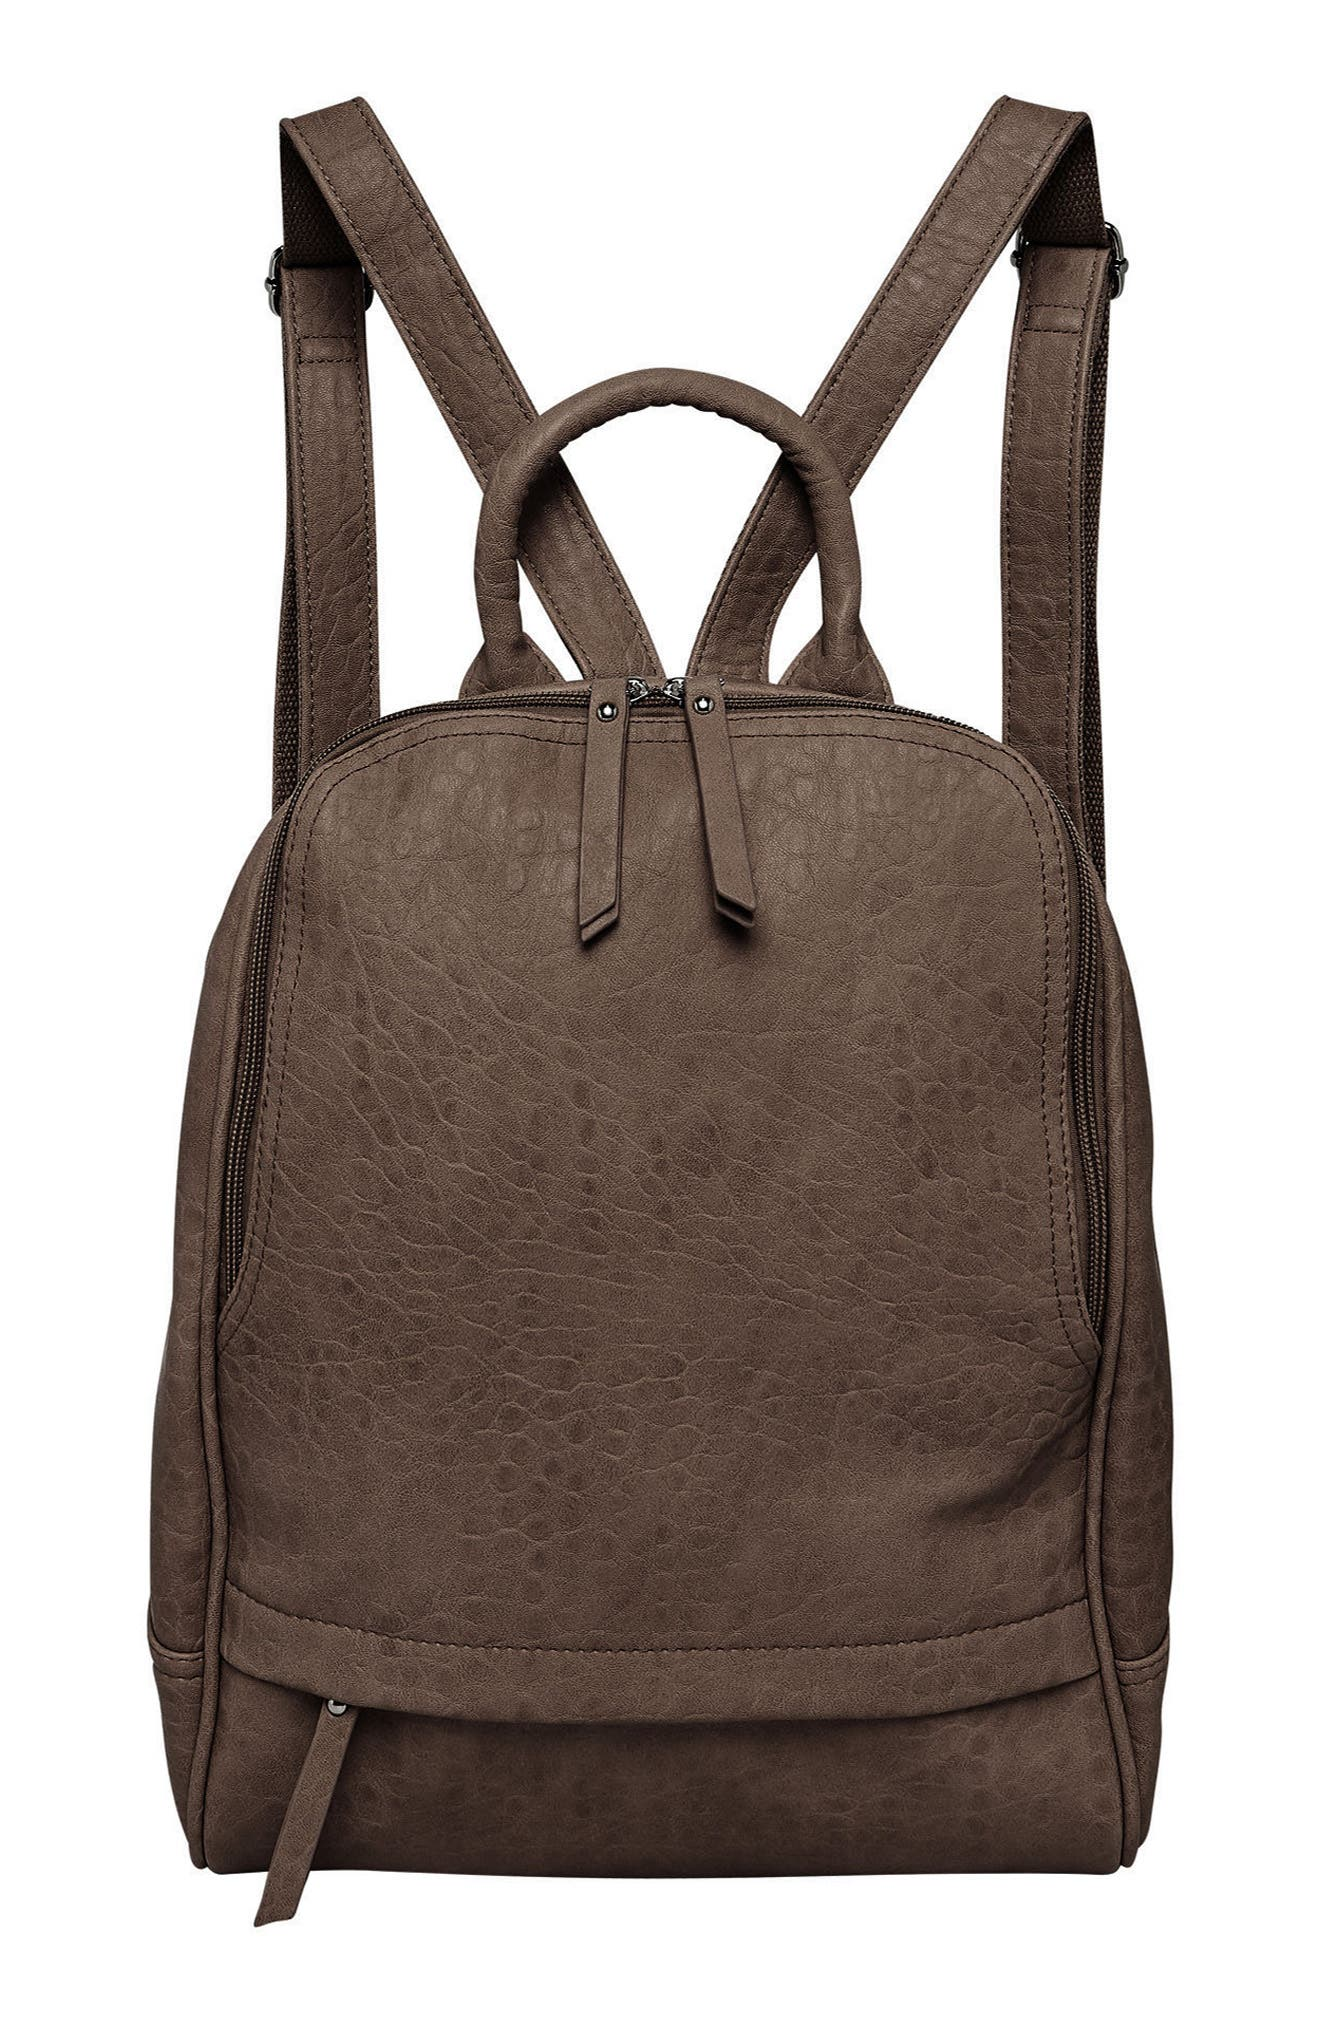 Urban Originals My Way Vegan Leather Backpack